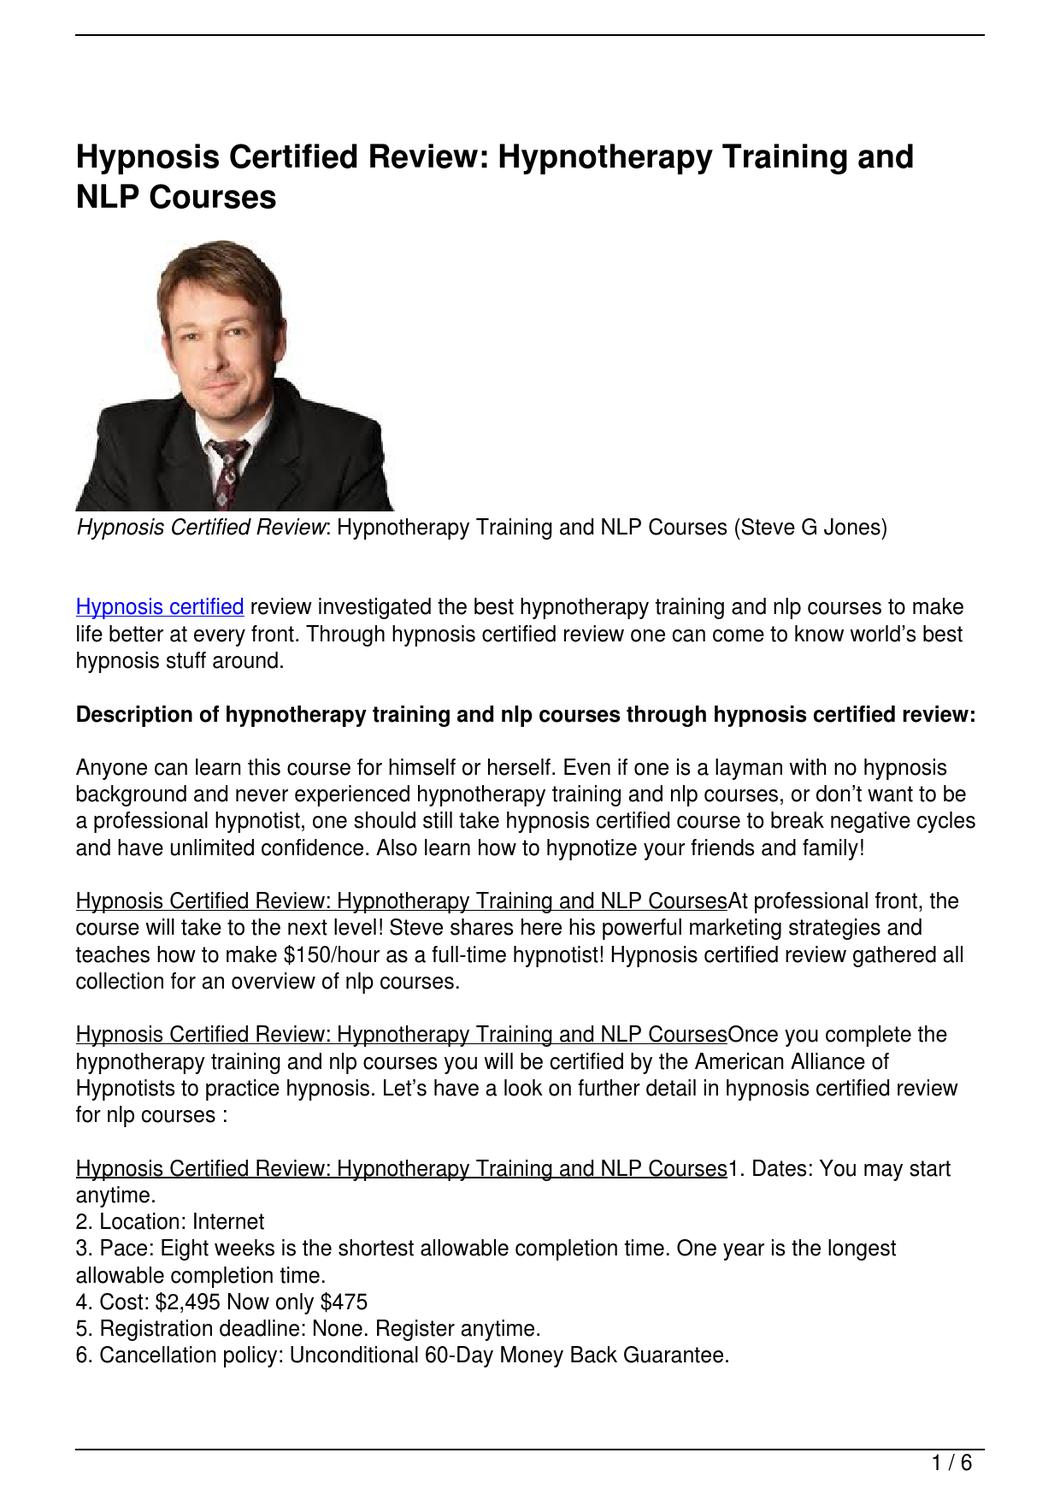 Hypnosis Certified Review Hypnotherapy Training And Nlp Courses By